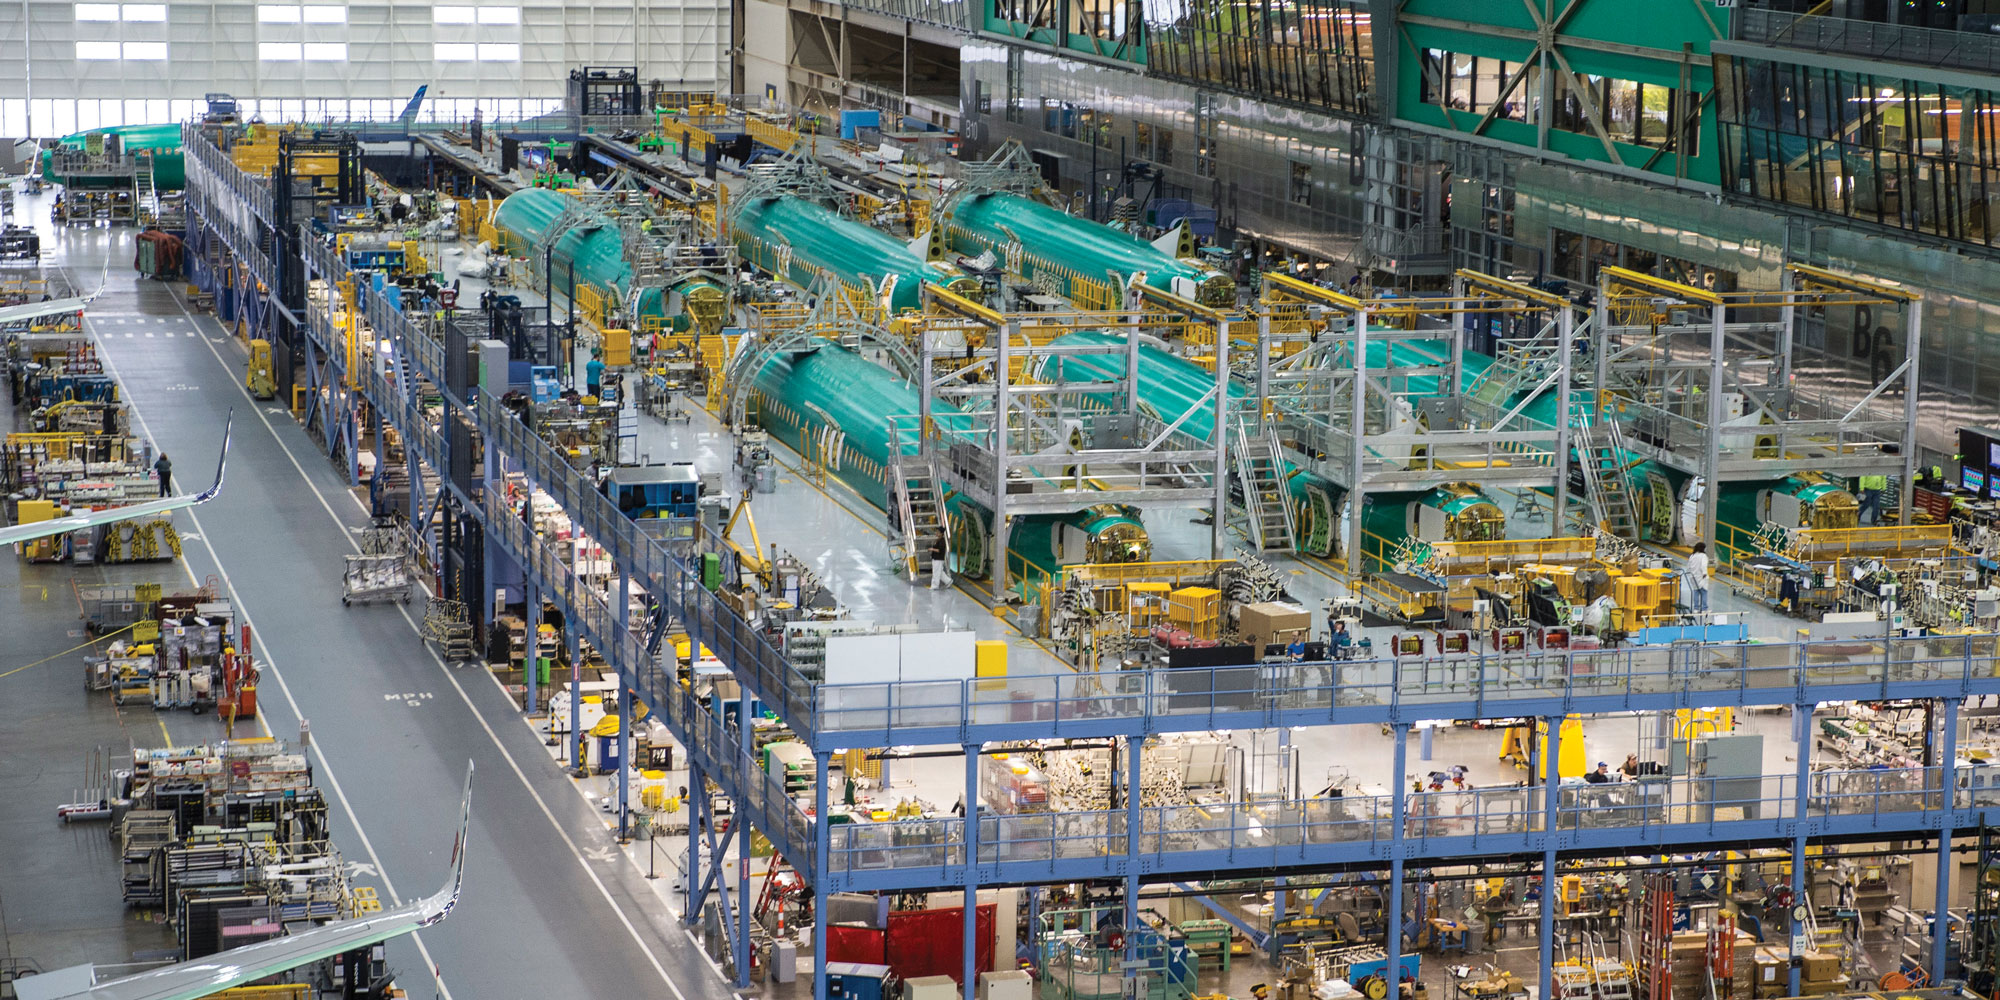 Boeing s new panel assembly line pal cuts flow time by 33 percent